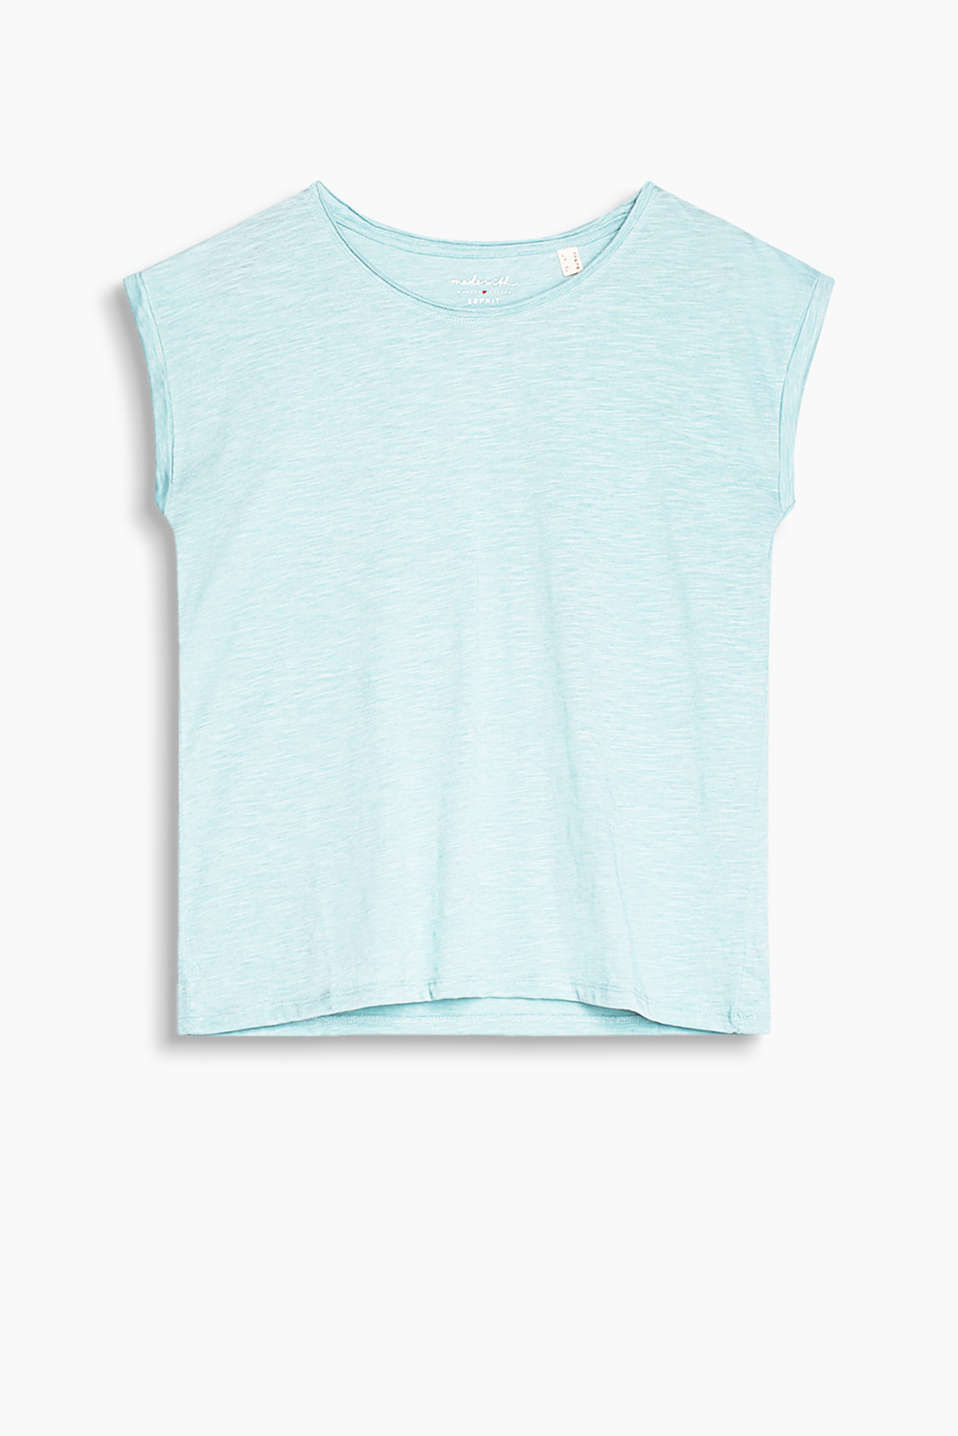 Airy T-shirt with a wide, round neckline